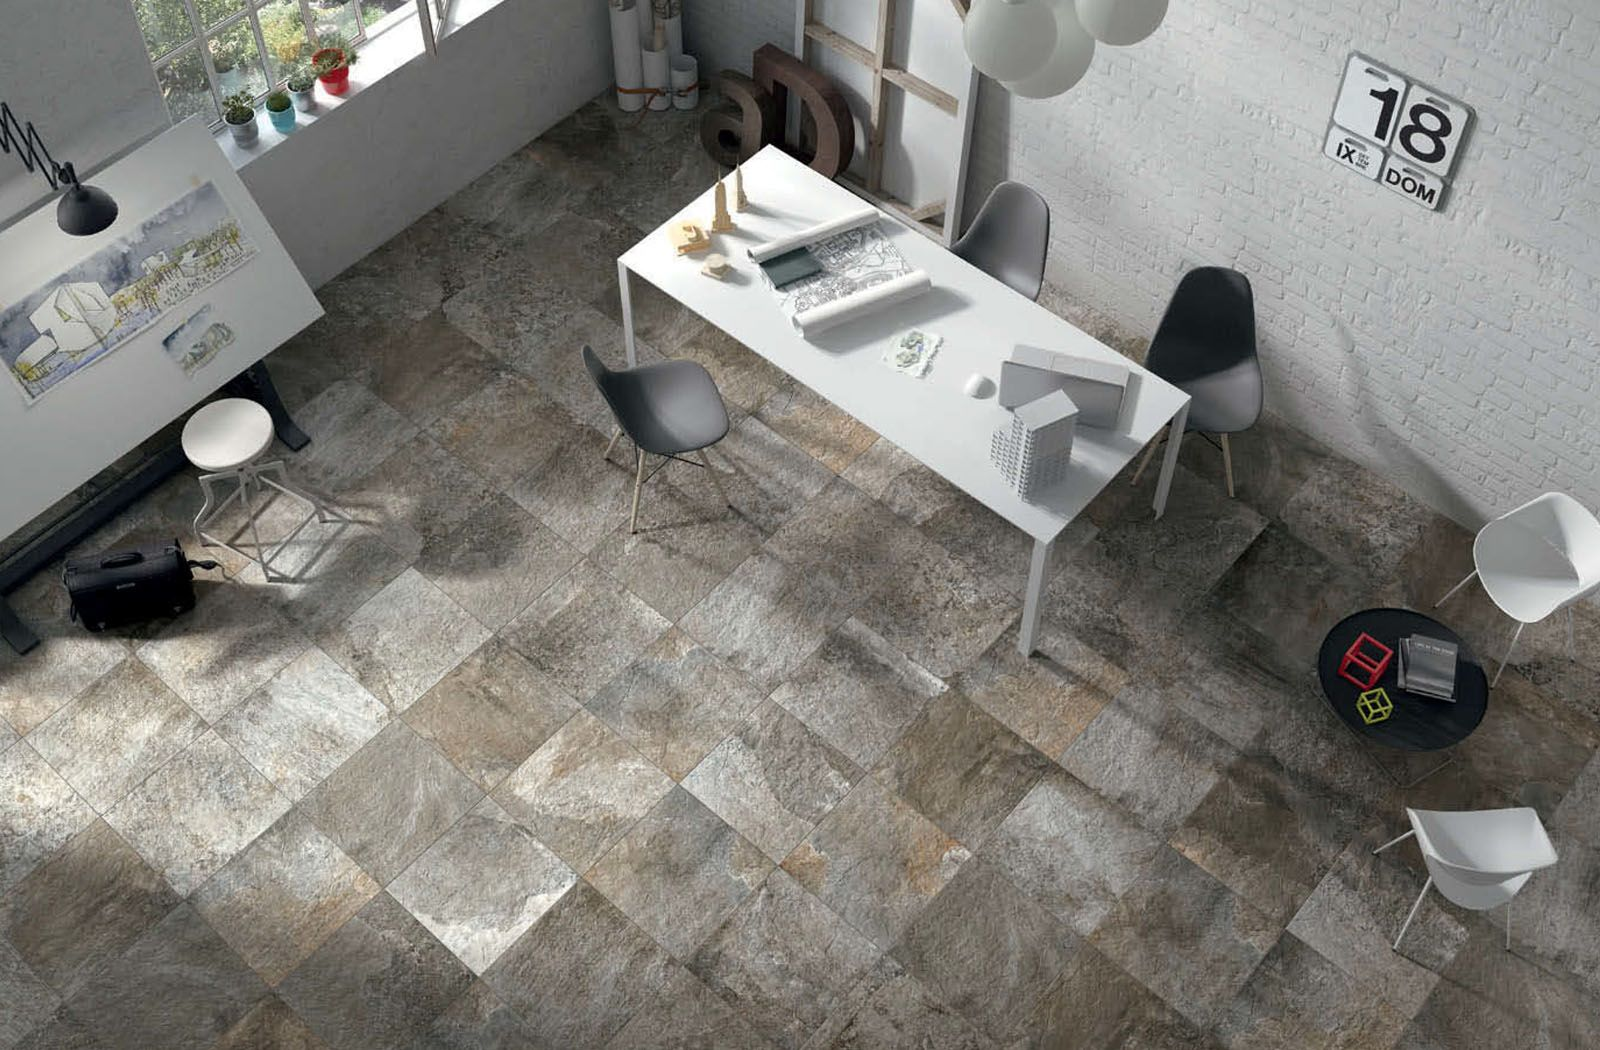 Home office space with des alpes tile from ceramiche settecento